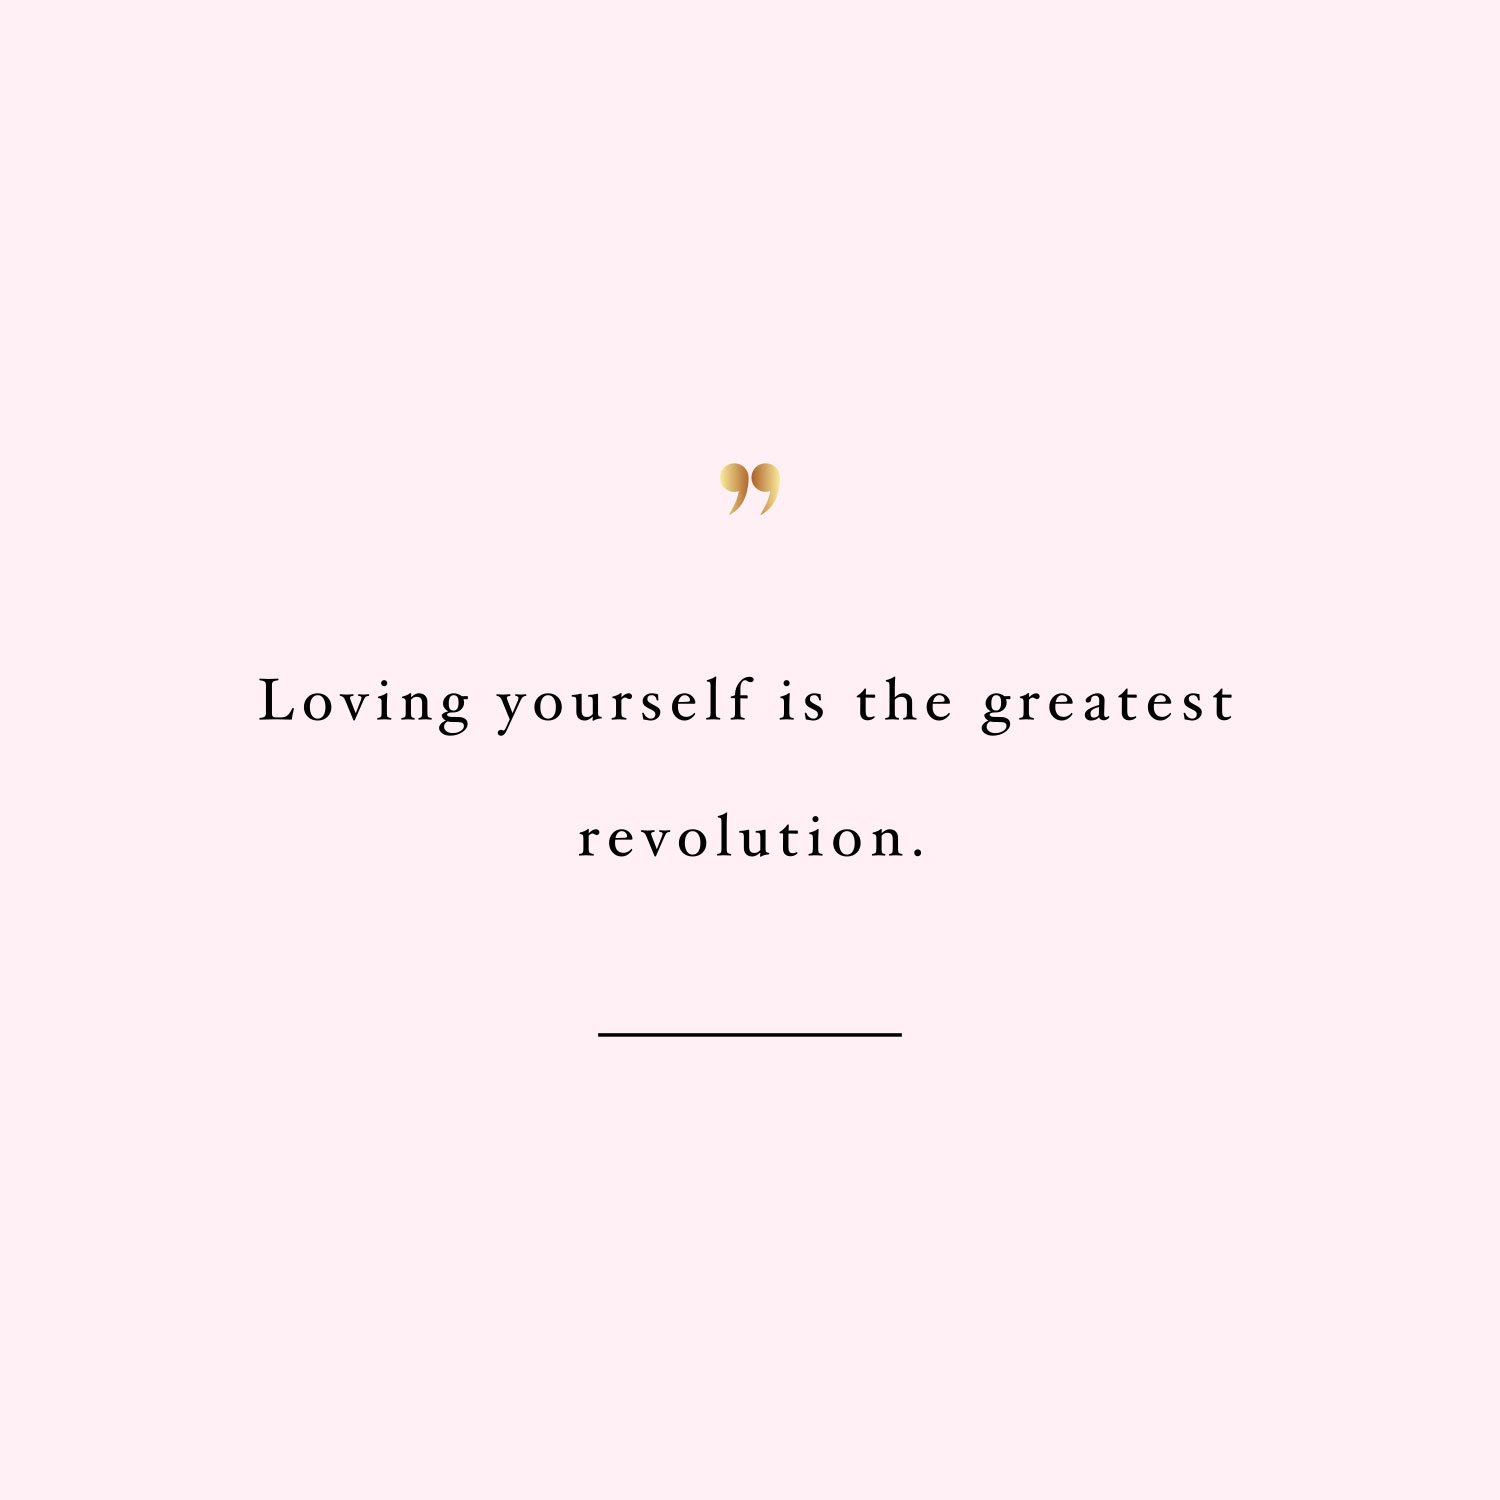 Loving yourself revolution! Browse our collection of inspirational exercise and fitness quotes and get instant weight loss and healthy lifestyle motivation. Stay focused and get fit, healthy and happy! https://www.spotebi.com/workout-motivation/loving-yourself-revolution/